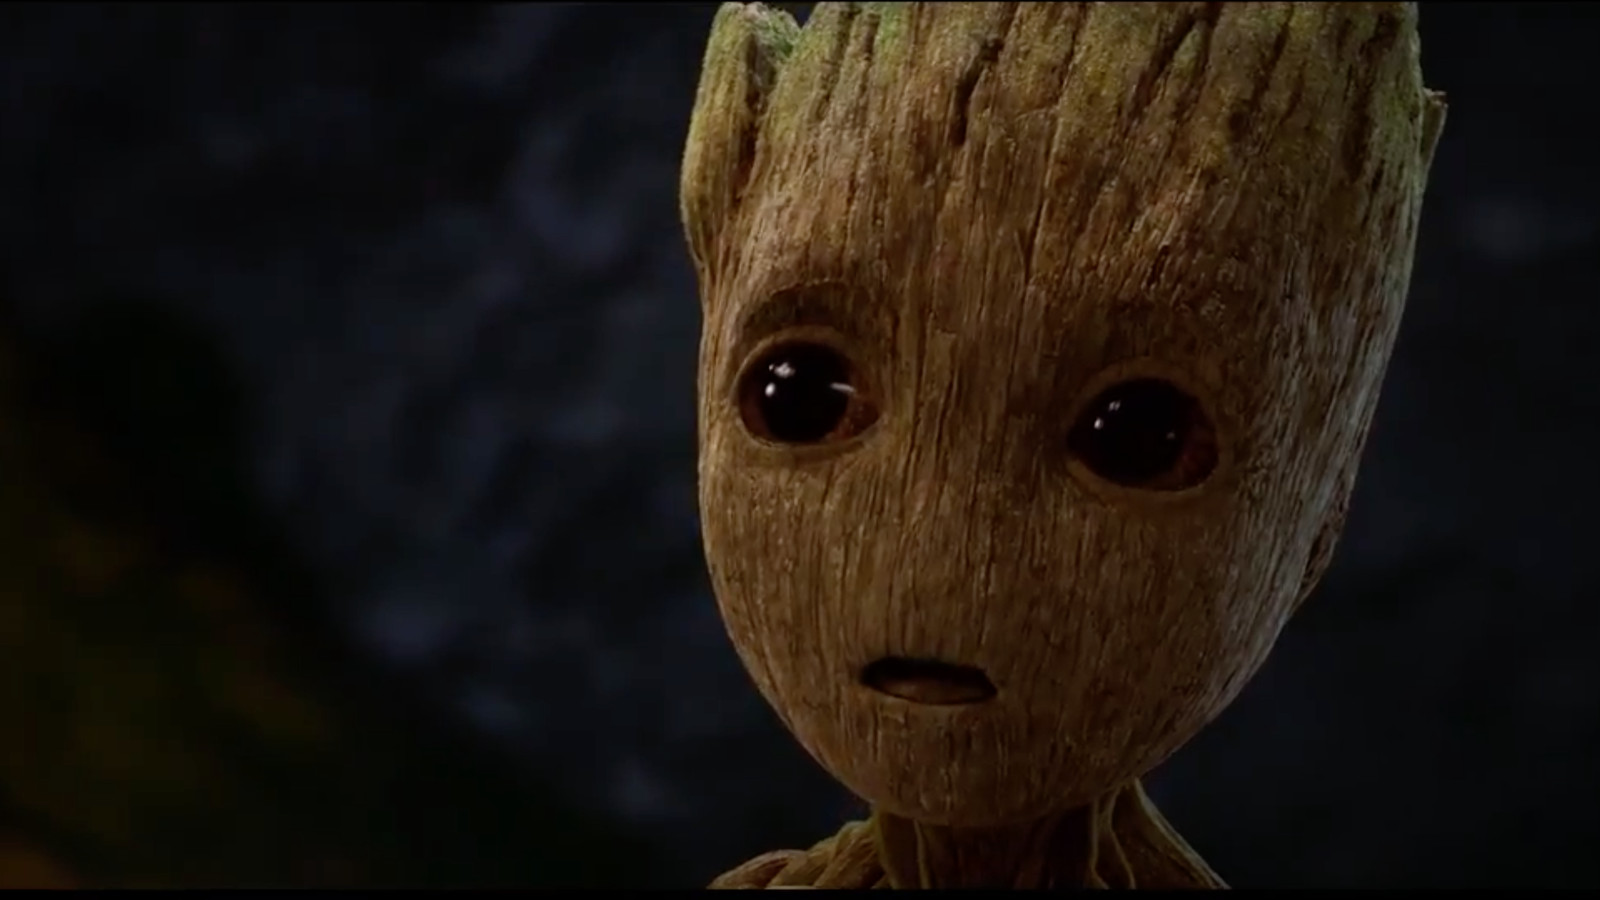 Baby Groot Guardians Of The Galaxy Vol 2 Hd Movies 4k: The Final Guardians Of The Galaxy Vol. 2 Trailer Is Here